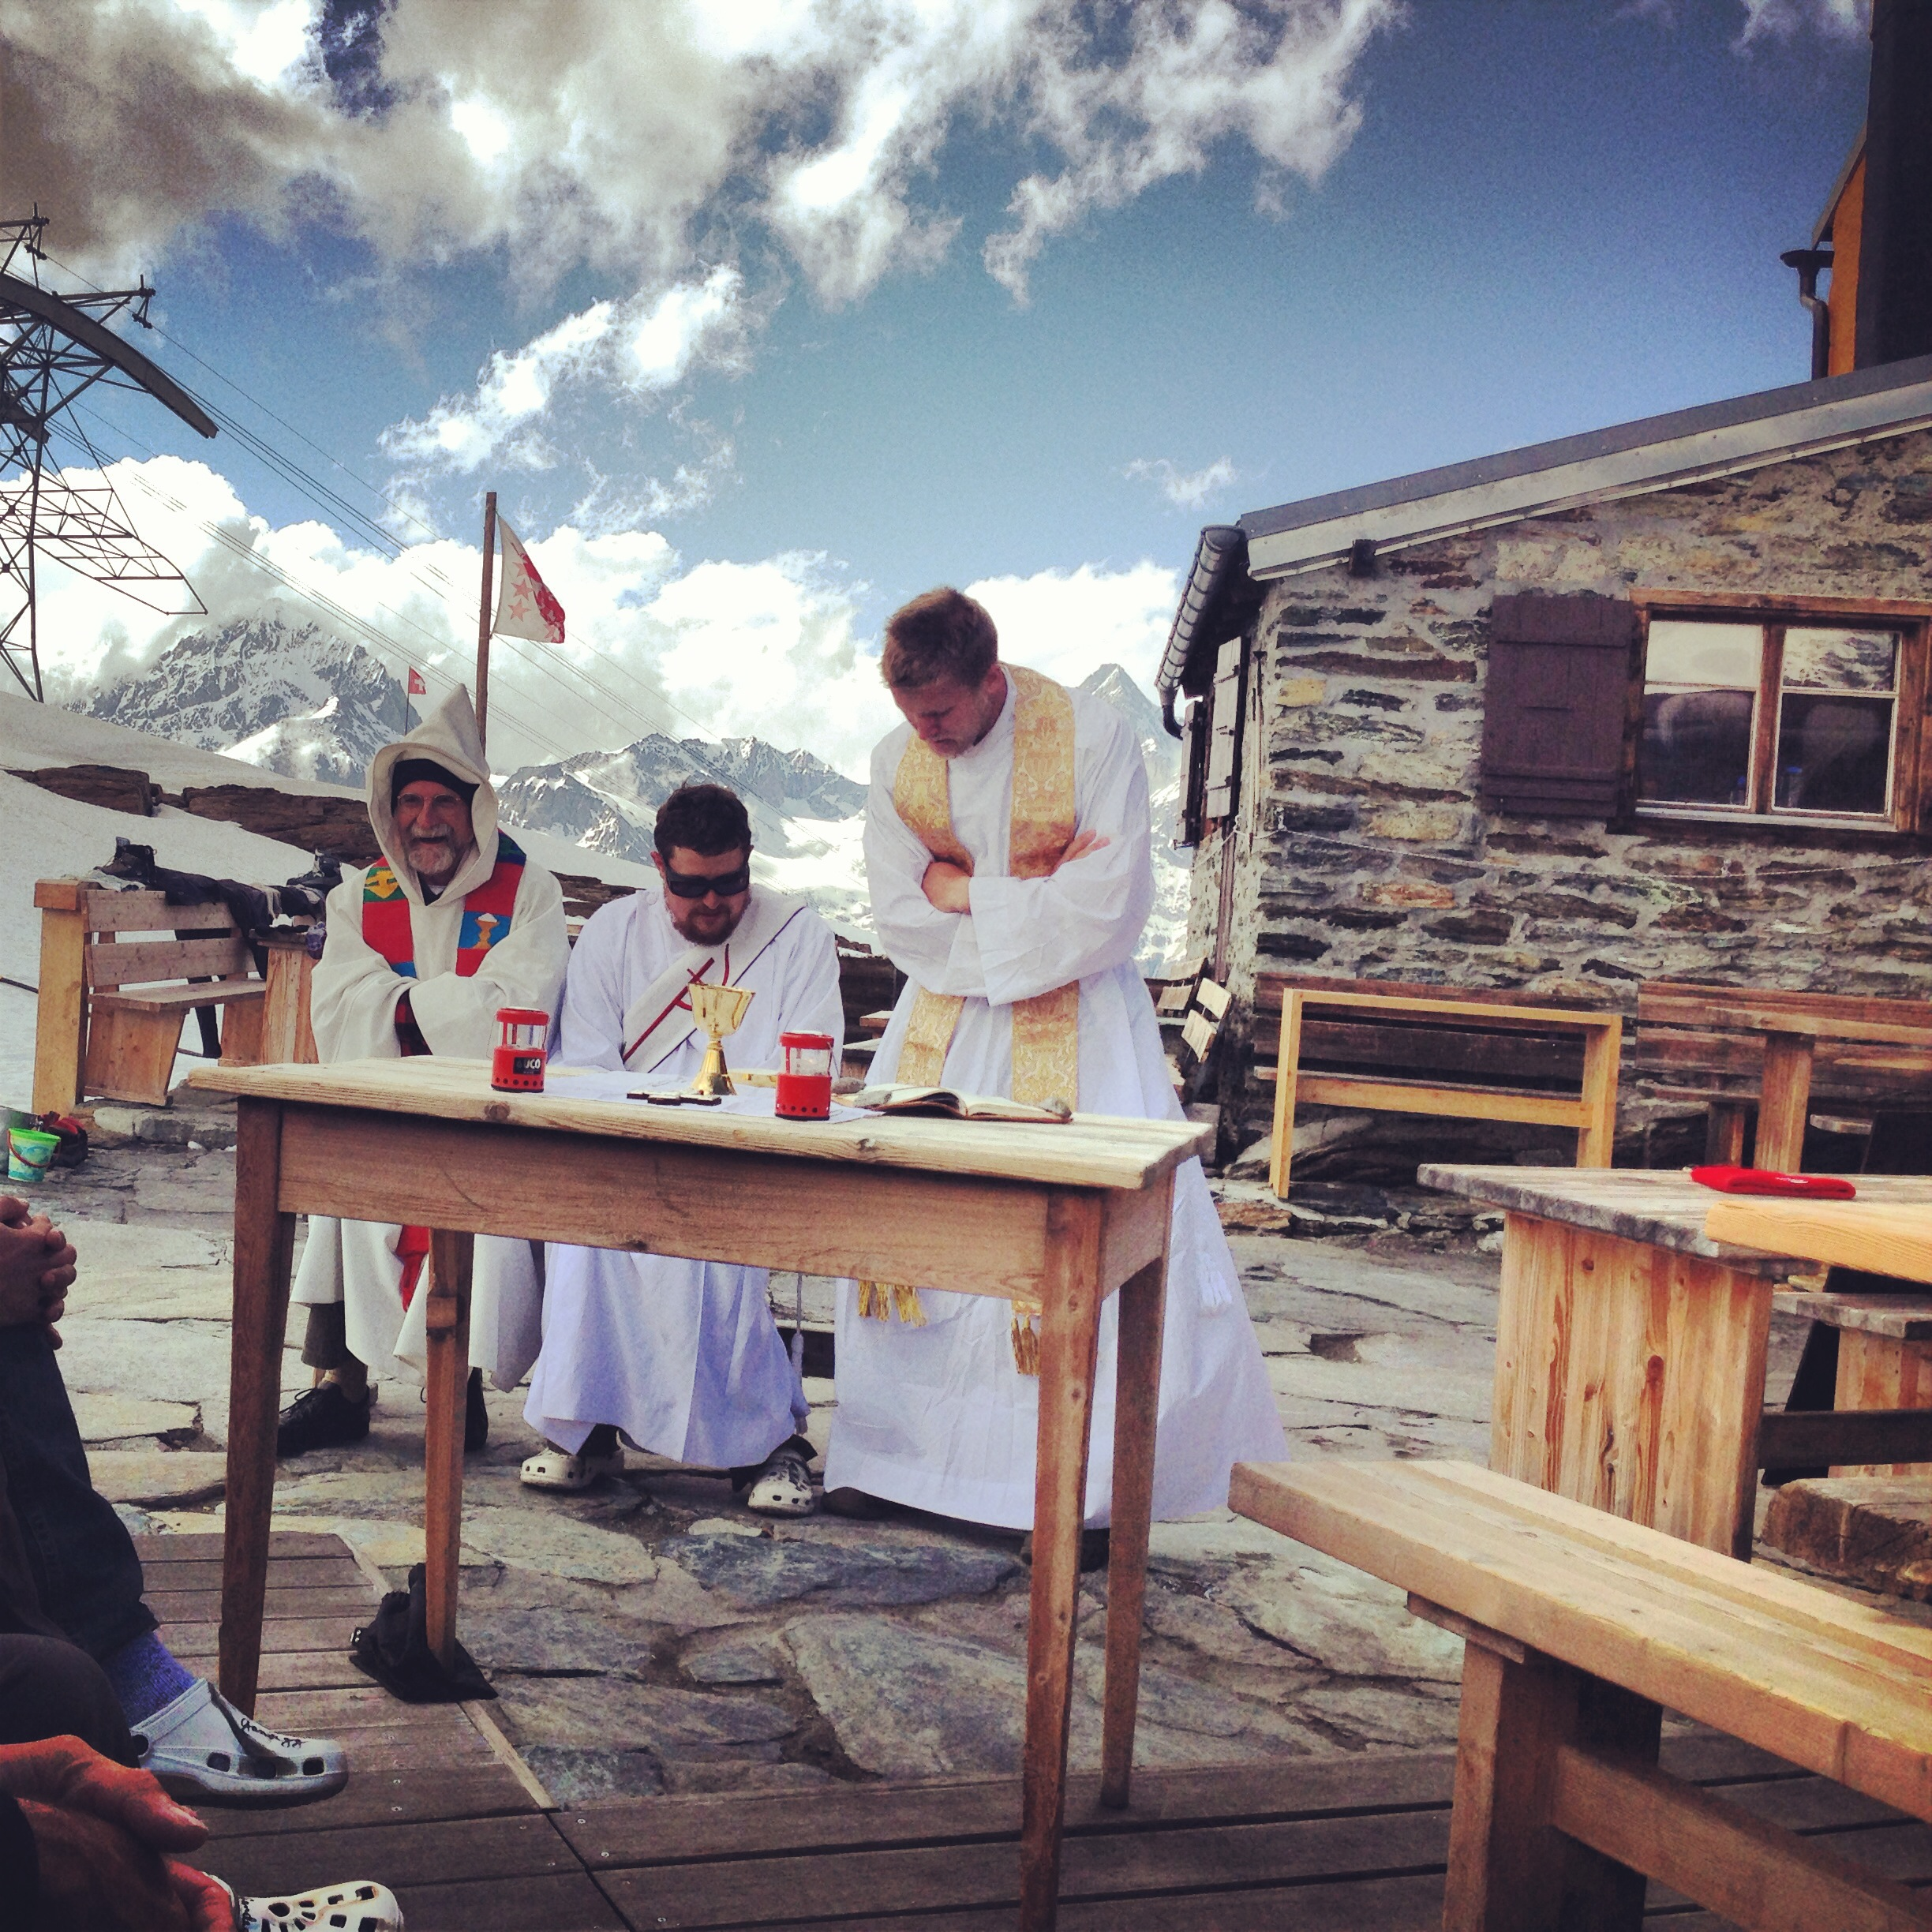 Fr. Nathan and Fr. John preparing to celebrate Mass at the base of the Matterhorn, Zermatt.